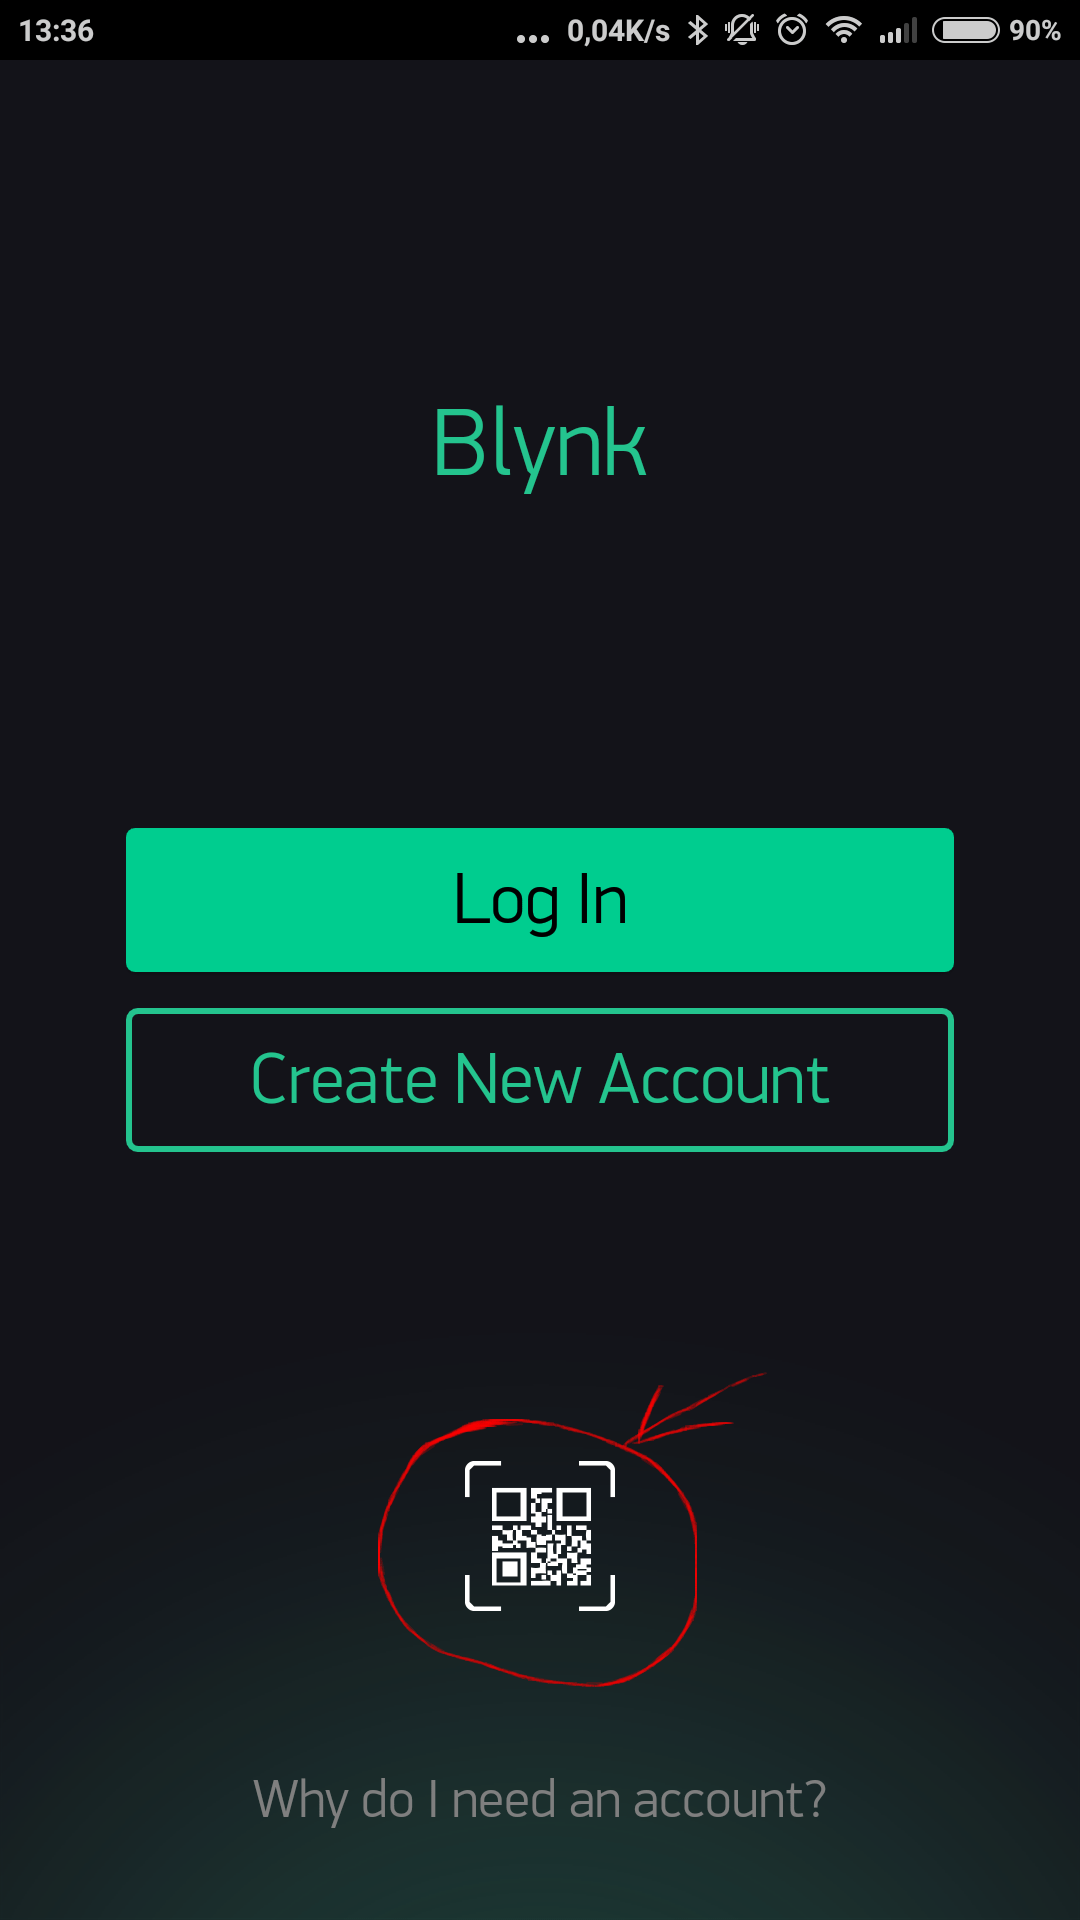 Blynk Server Wiringpi Serial Lcd Scan Qr